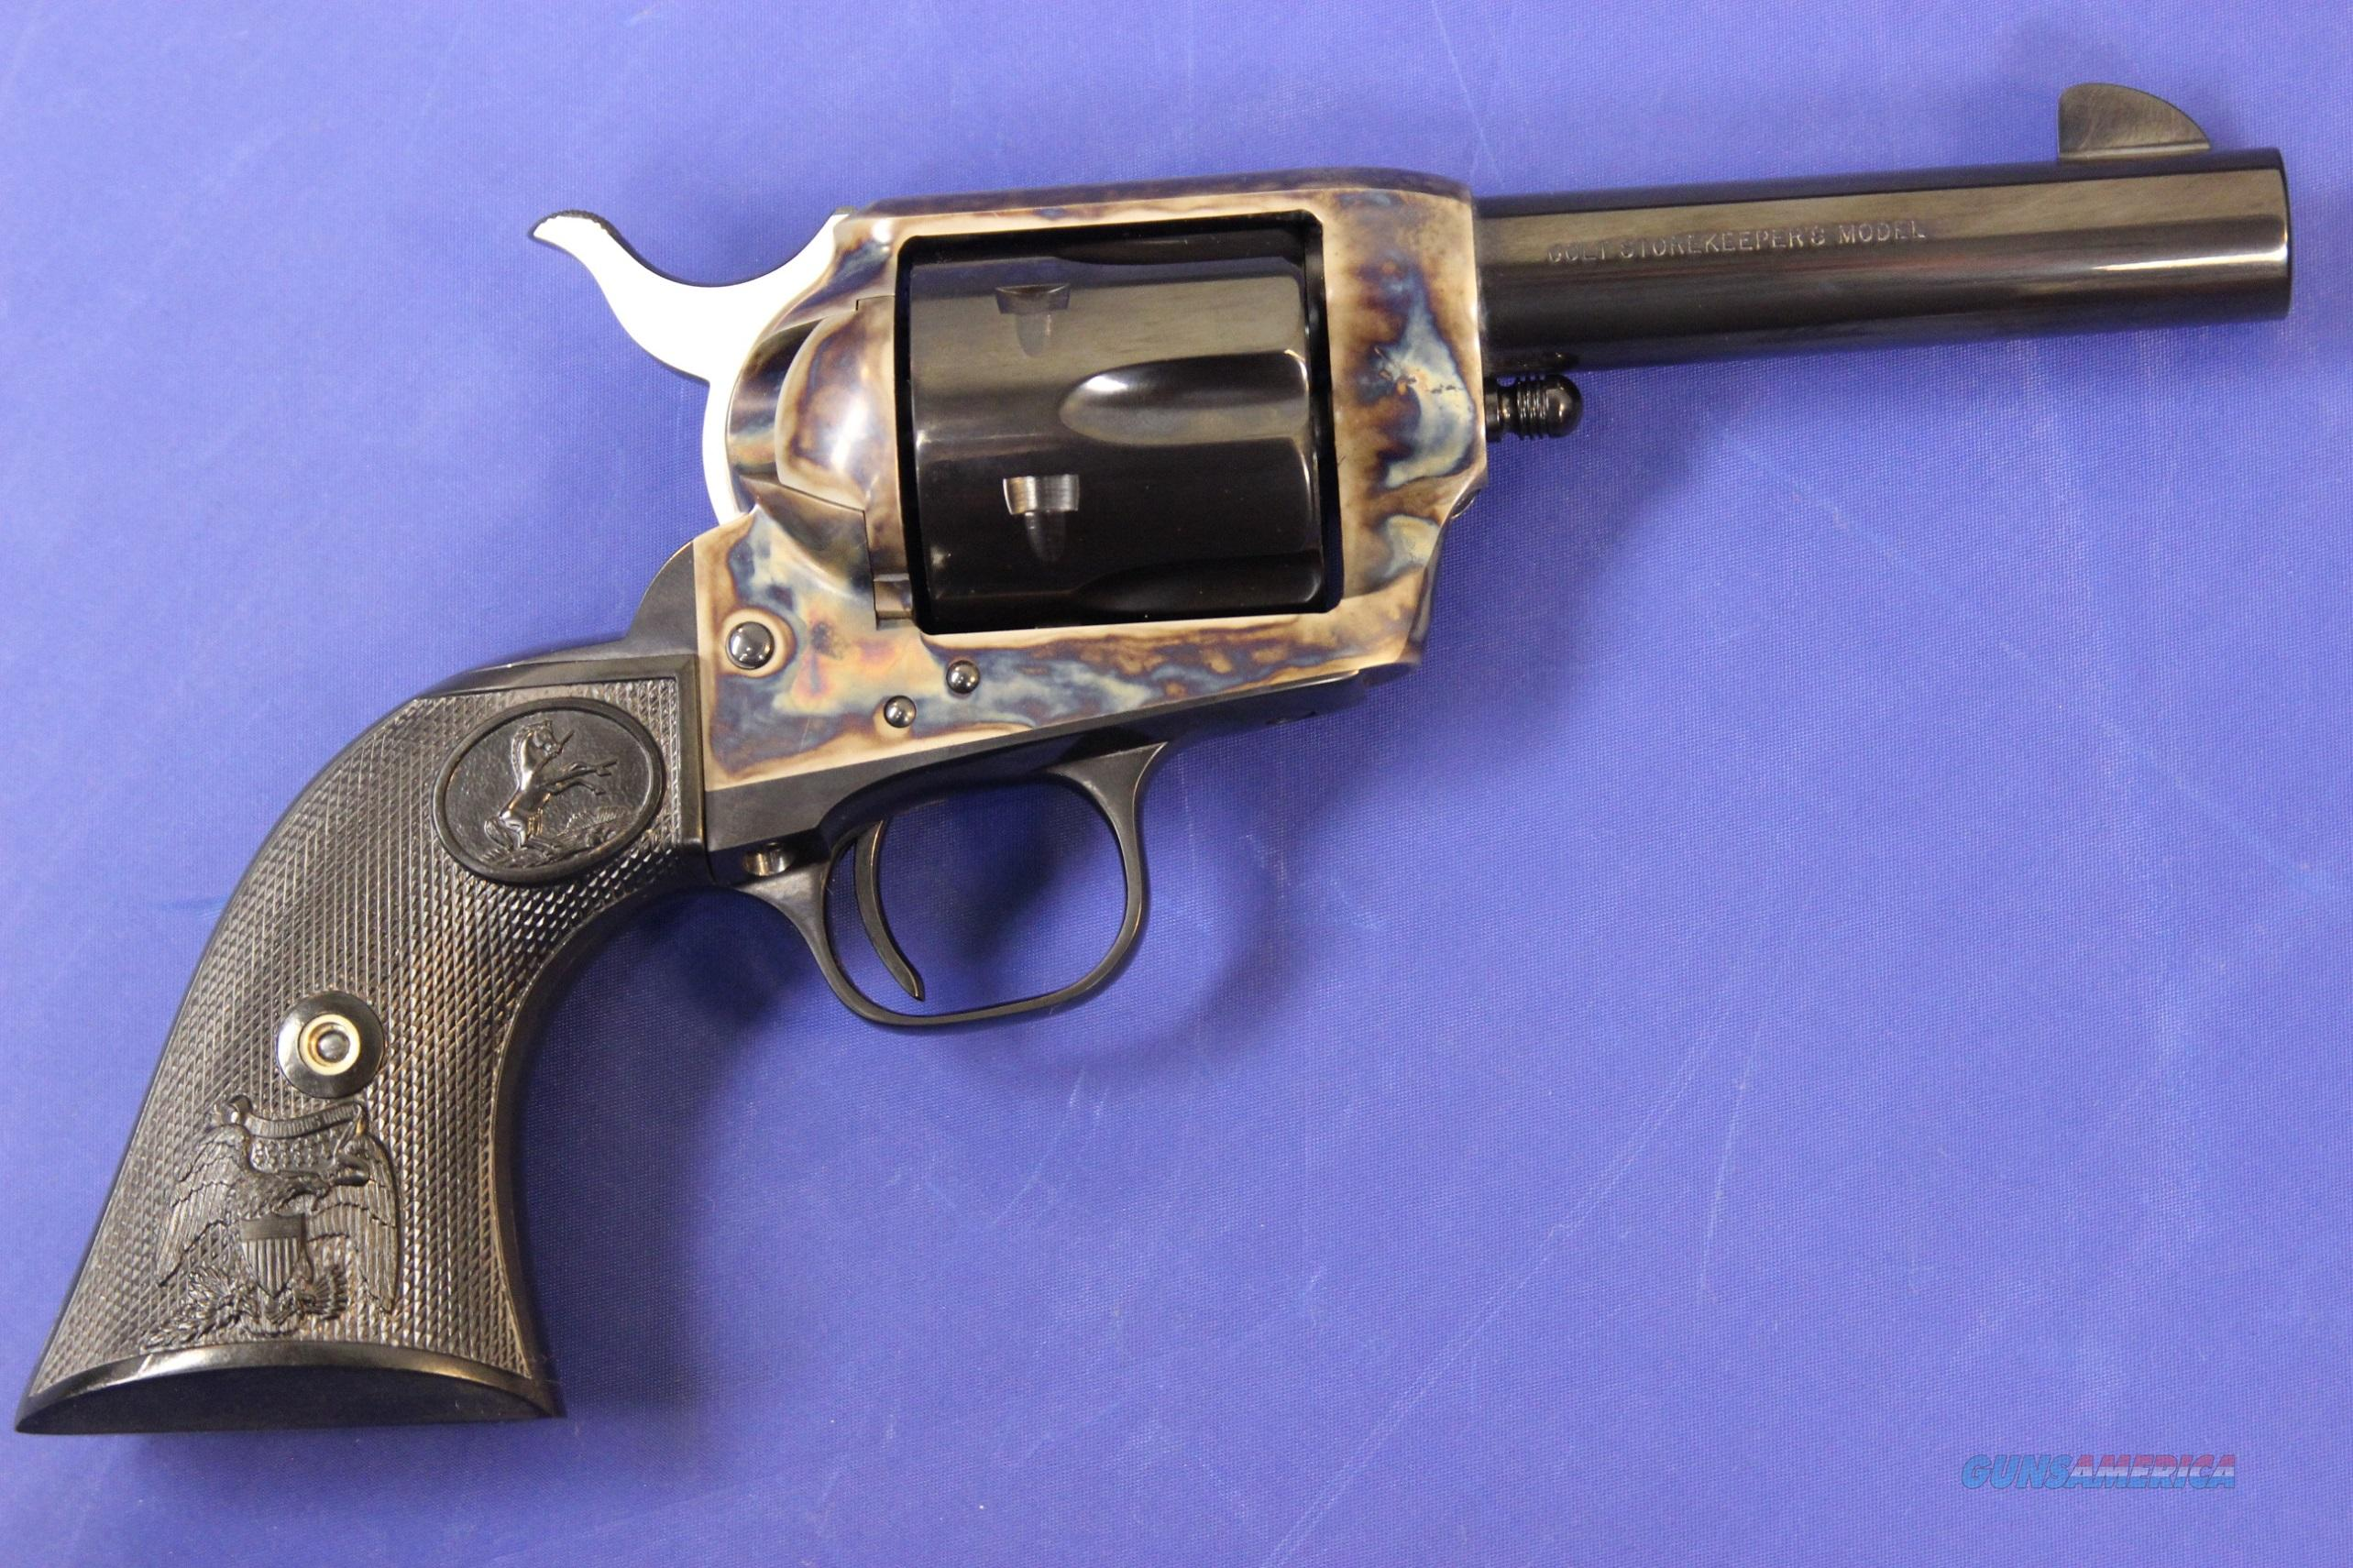 COLT SINGLE ACTION ARMY MODEL P2836S .45 COLT w/ BOX - LIKE NEW  Guns > Pistols > Colt Single Action Revolvers - 3rd Gen.